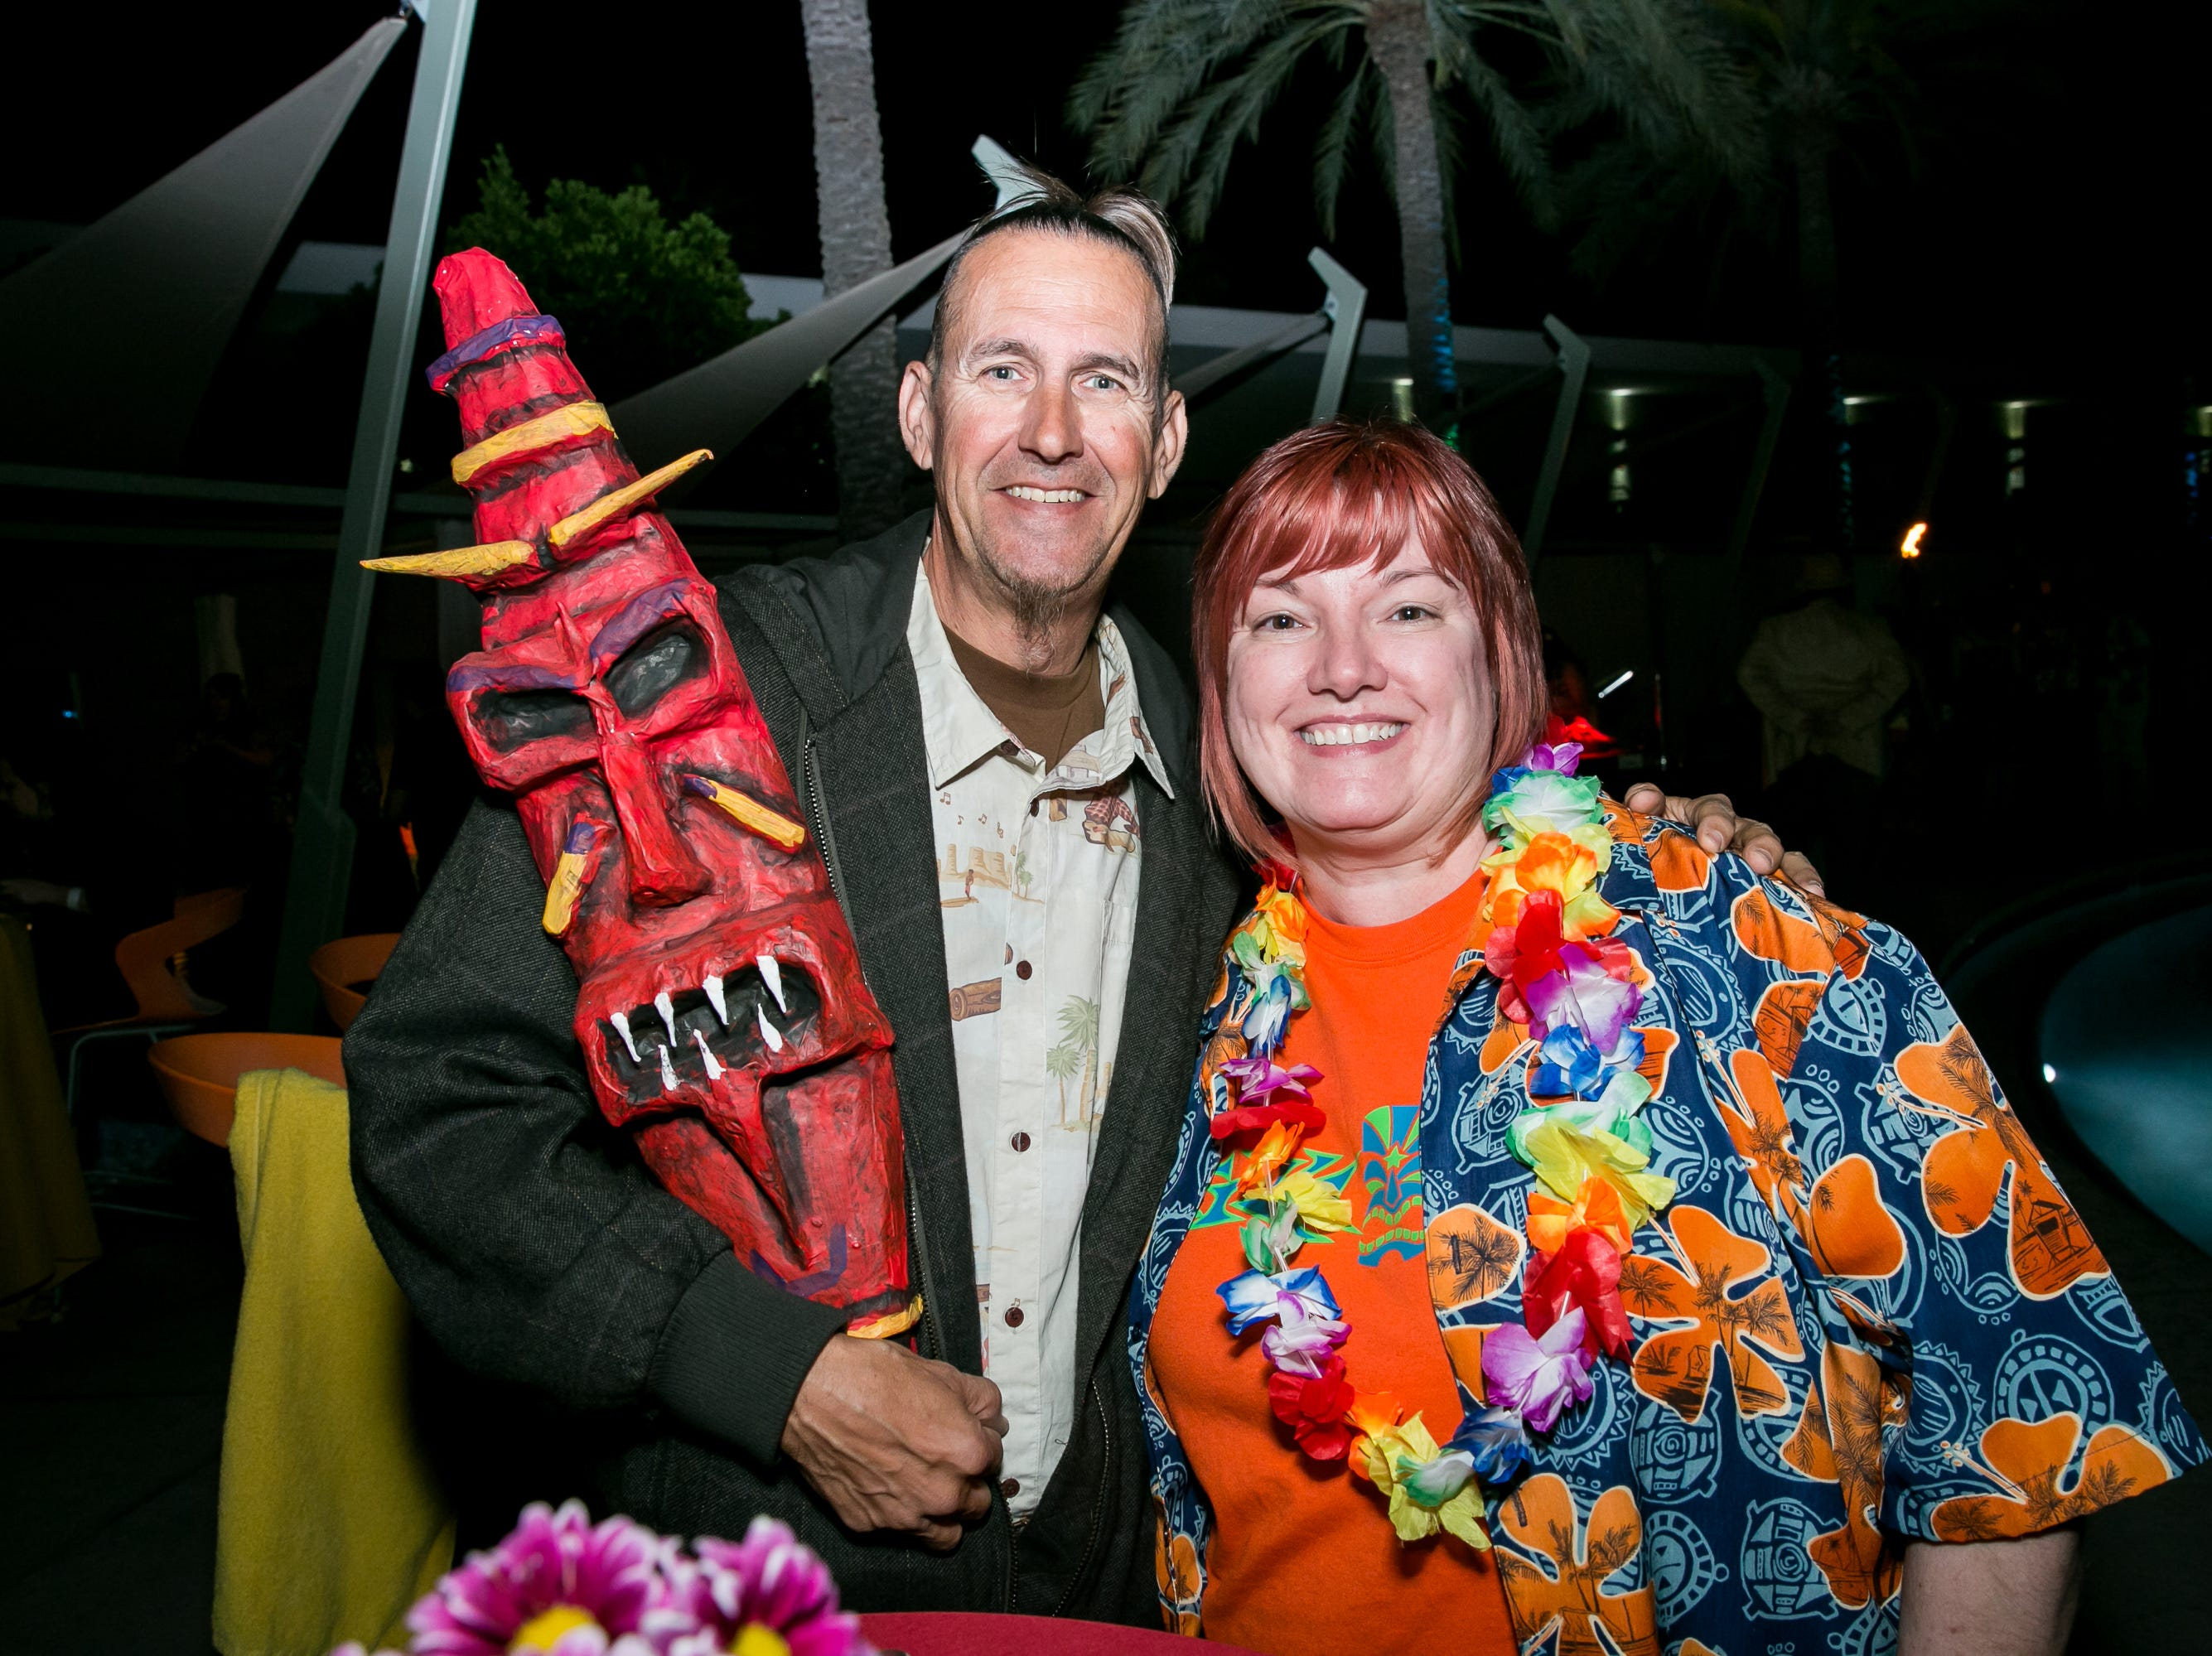 This couple was ready to party during Arizona Tiki Oasis at Hotel Valley Ho in Scottsdale on April 12, 2019.